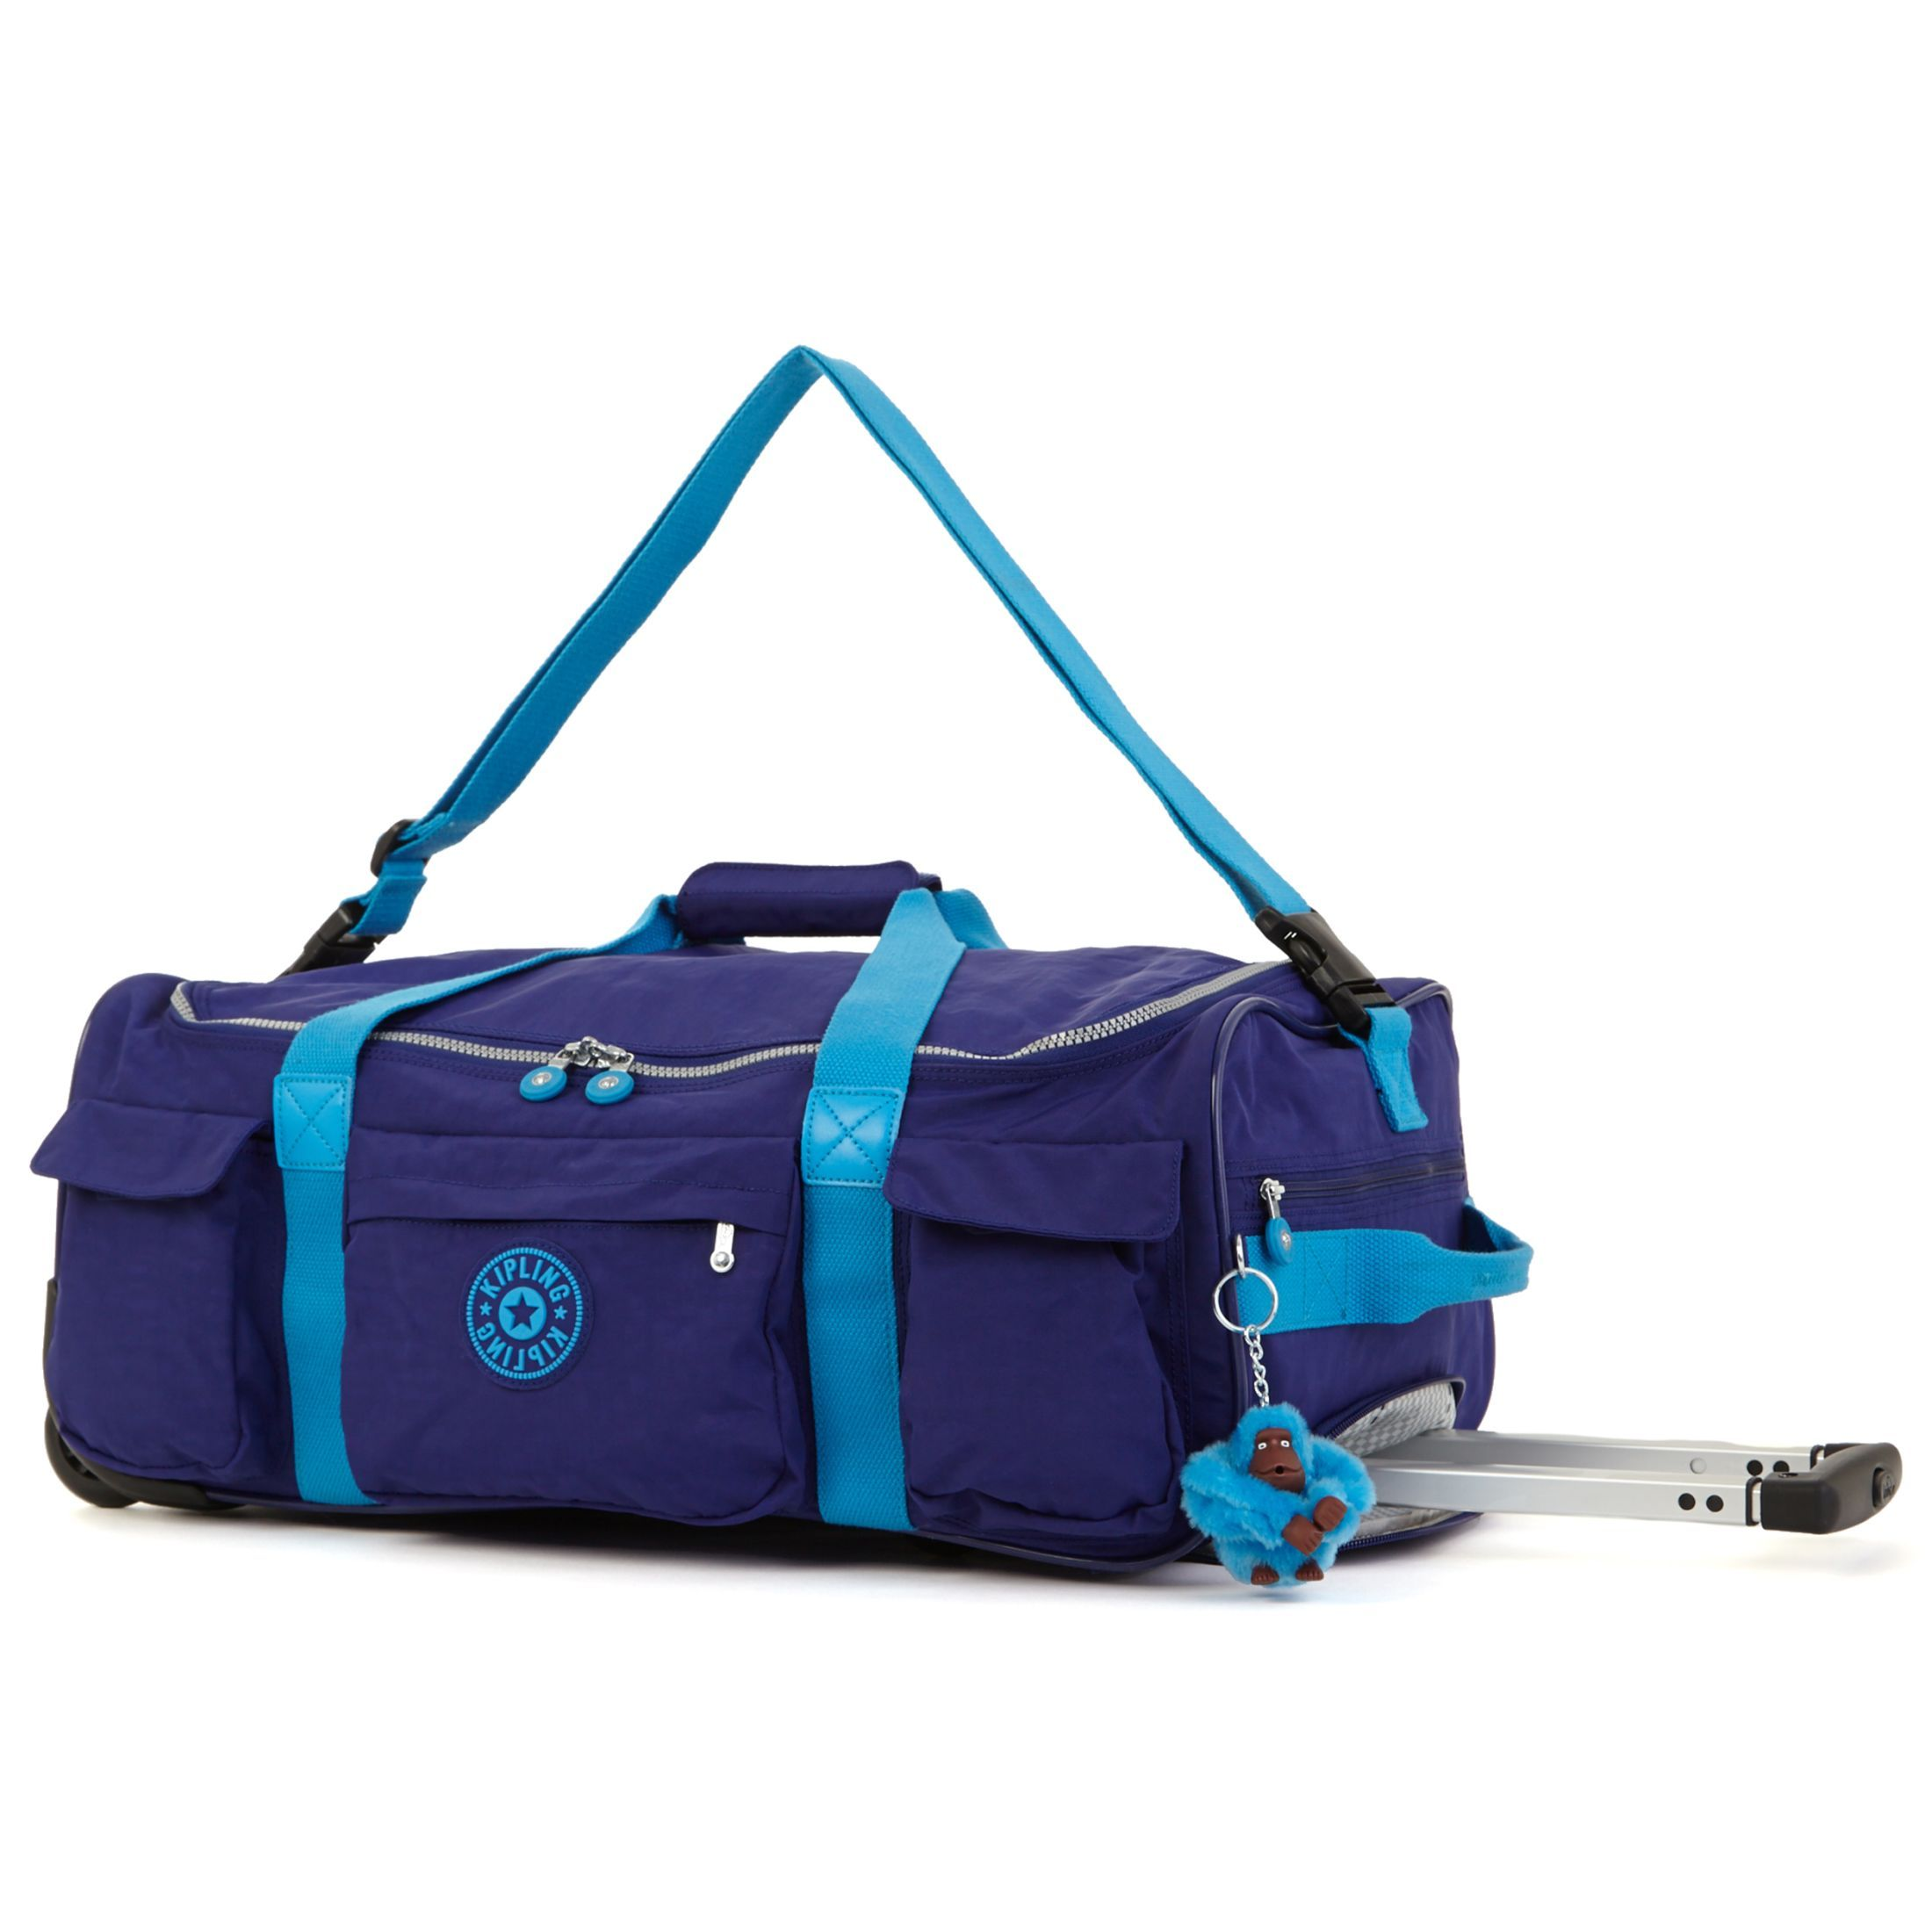 f5e241c9e3 Discover Small Carry-On Rolling Luggage Duffel